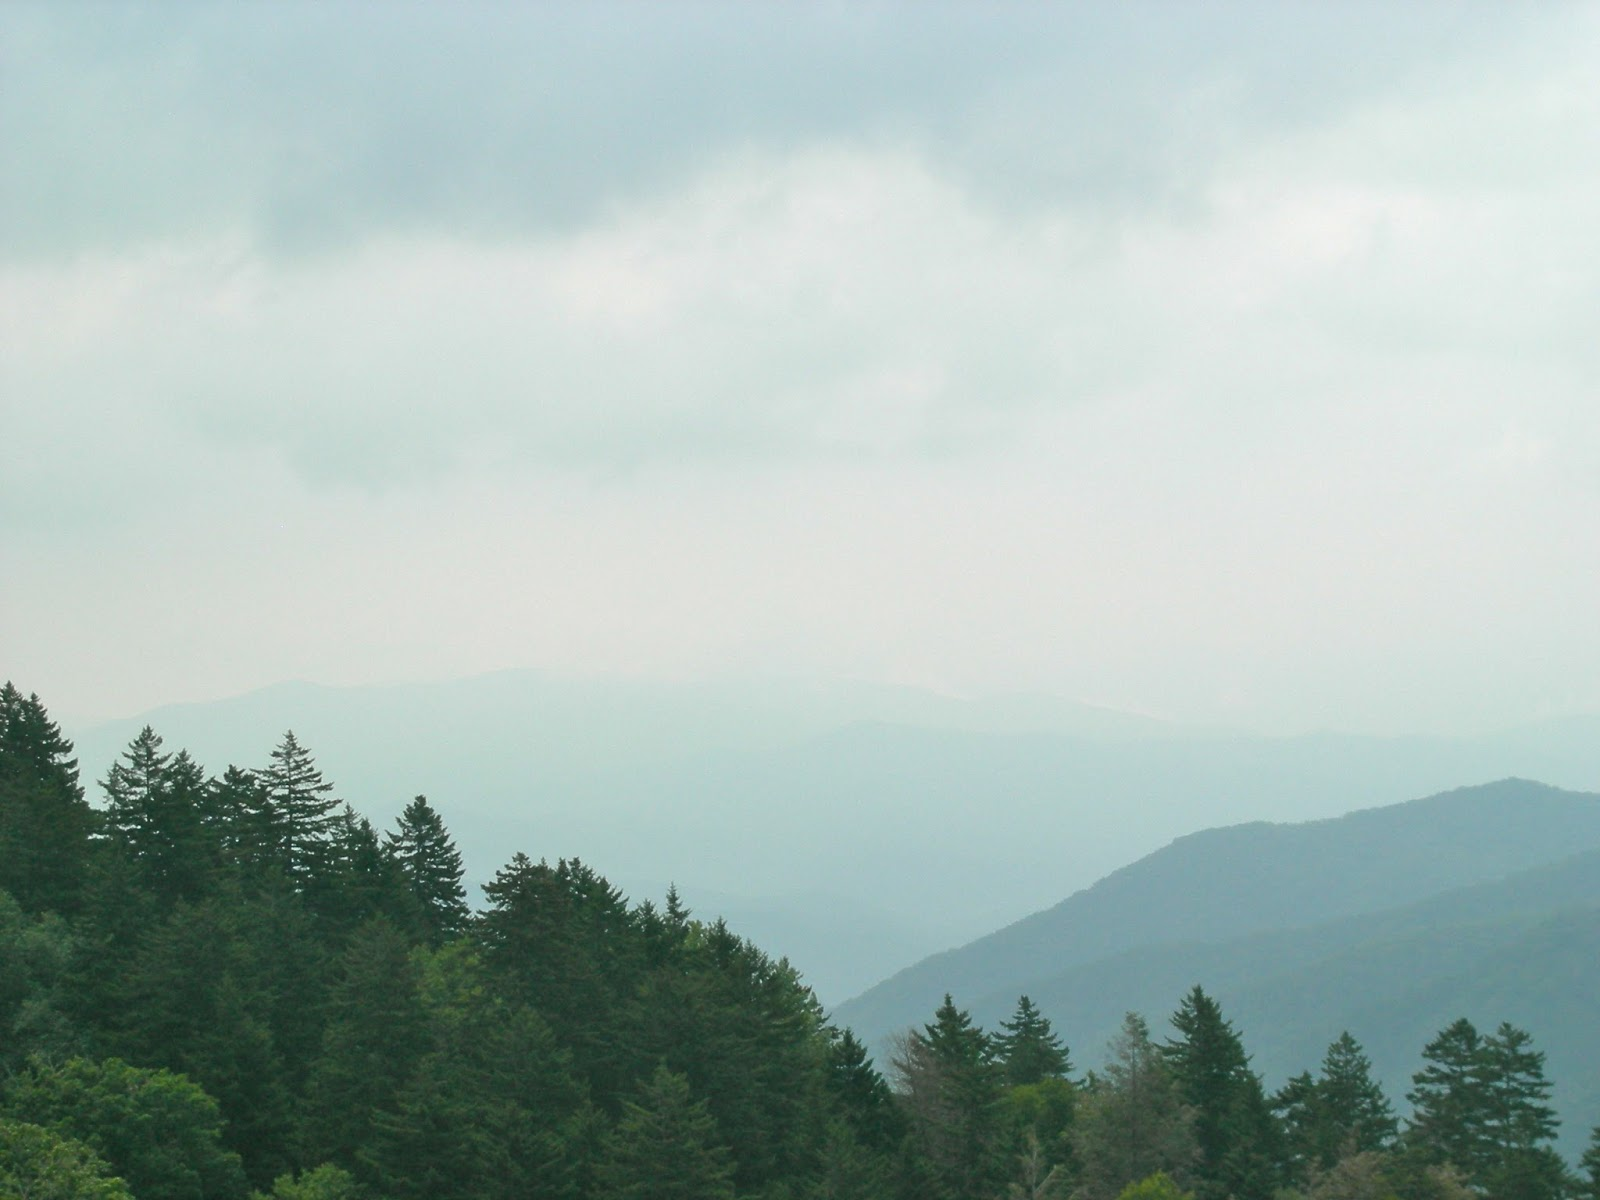 Driving across the Smoky Mountains